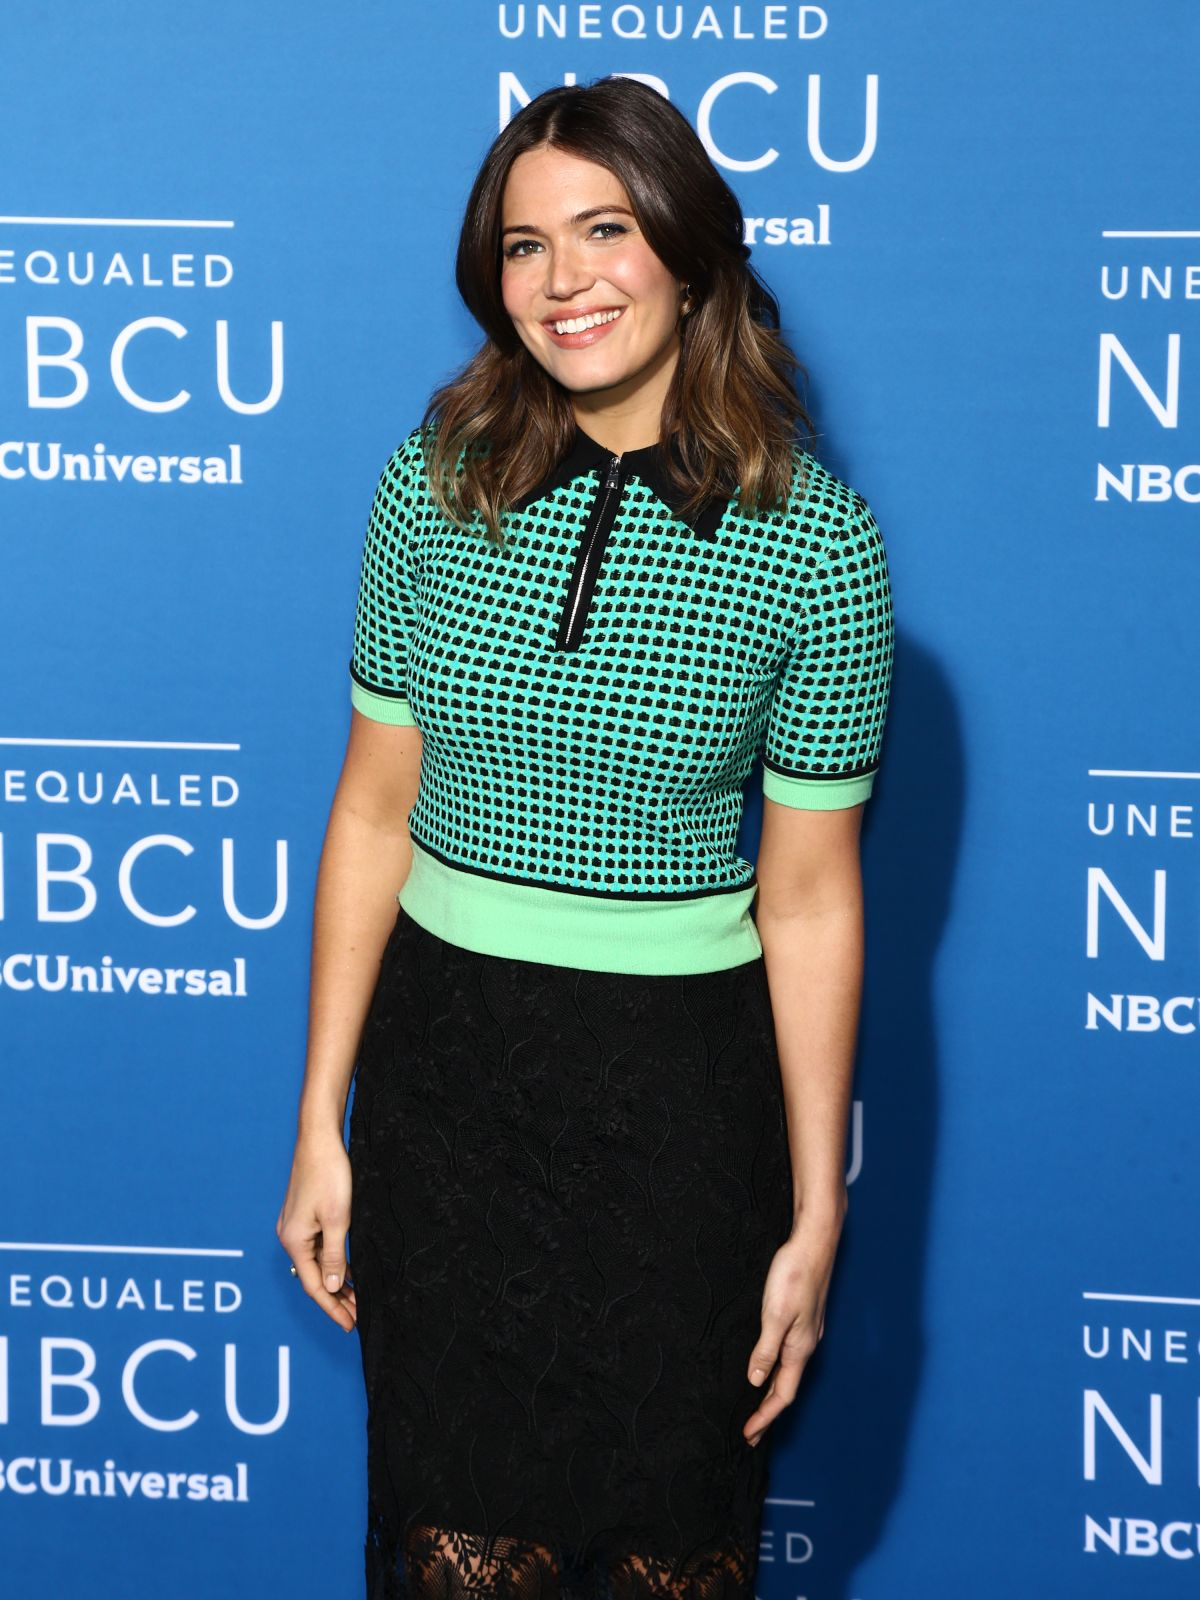 Mandy Moore At NBCUniversal Upfront in New York City   mandy-moore-at-nbcuniversal-upfront-in-new-york-city_6